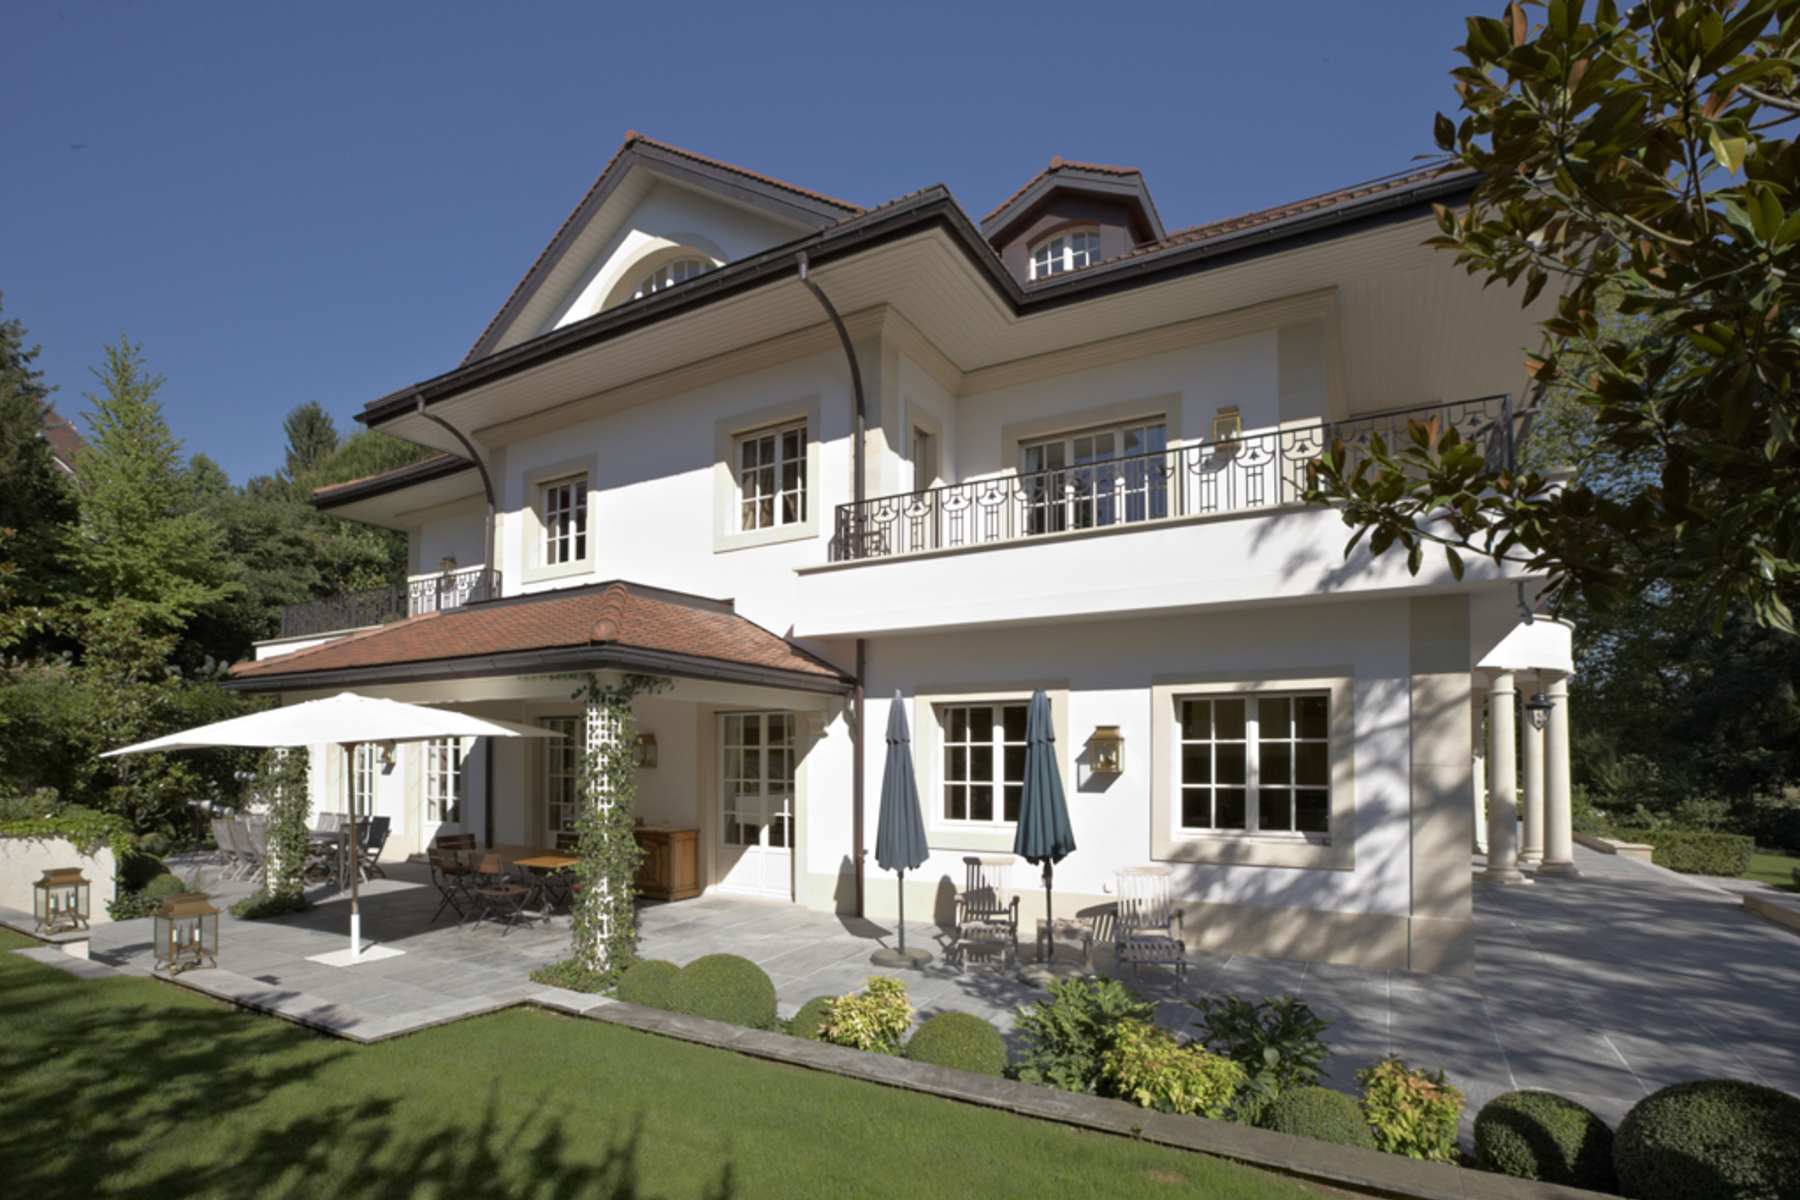 Single Family Homes for Sale at Superb mansion close to Denantou park Lausanne Lausanne, Vaud 1006 Switzerland